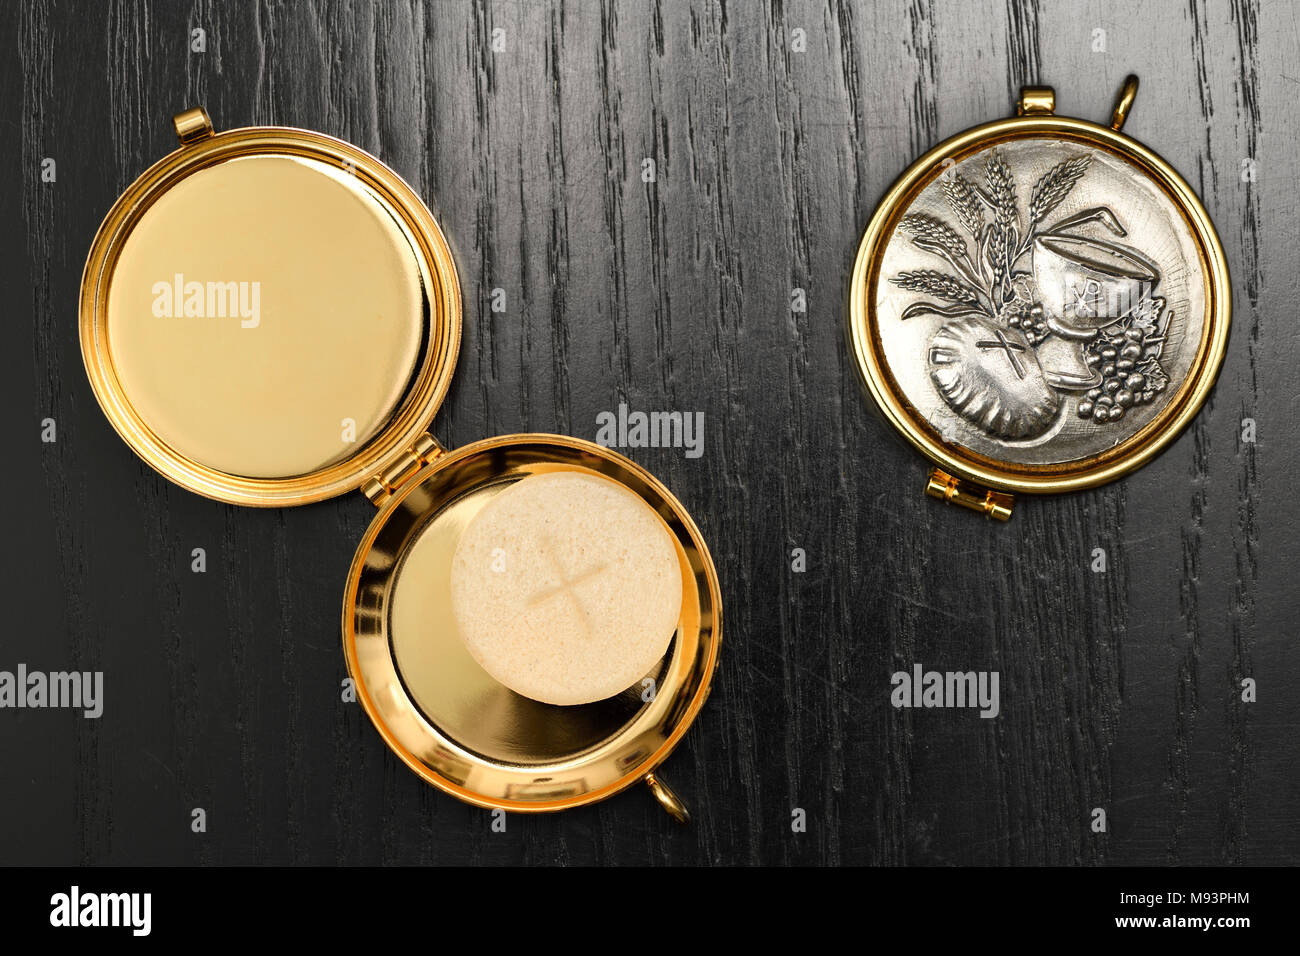 Host wafer of bread to be consecrated as the Body of Christ at a Roman Catholic Mass in a gold Pyx on a black oak table - Stock Image